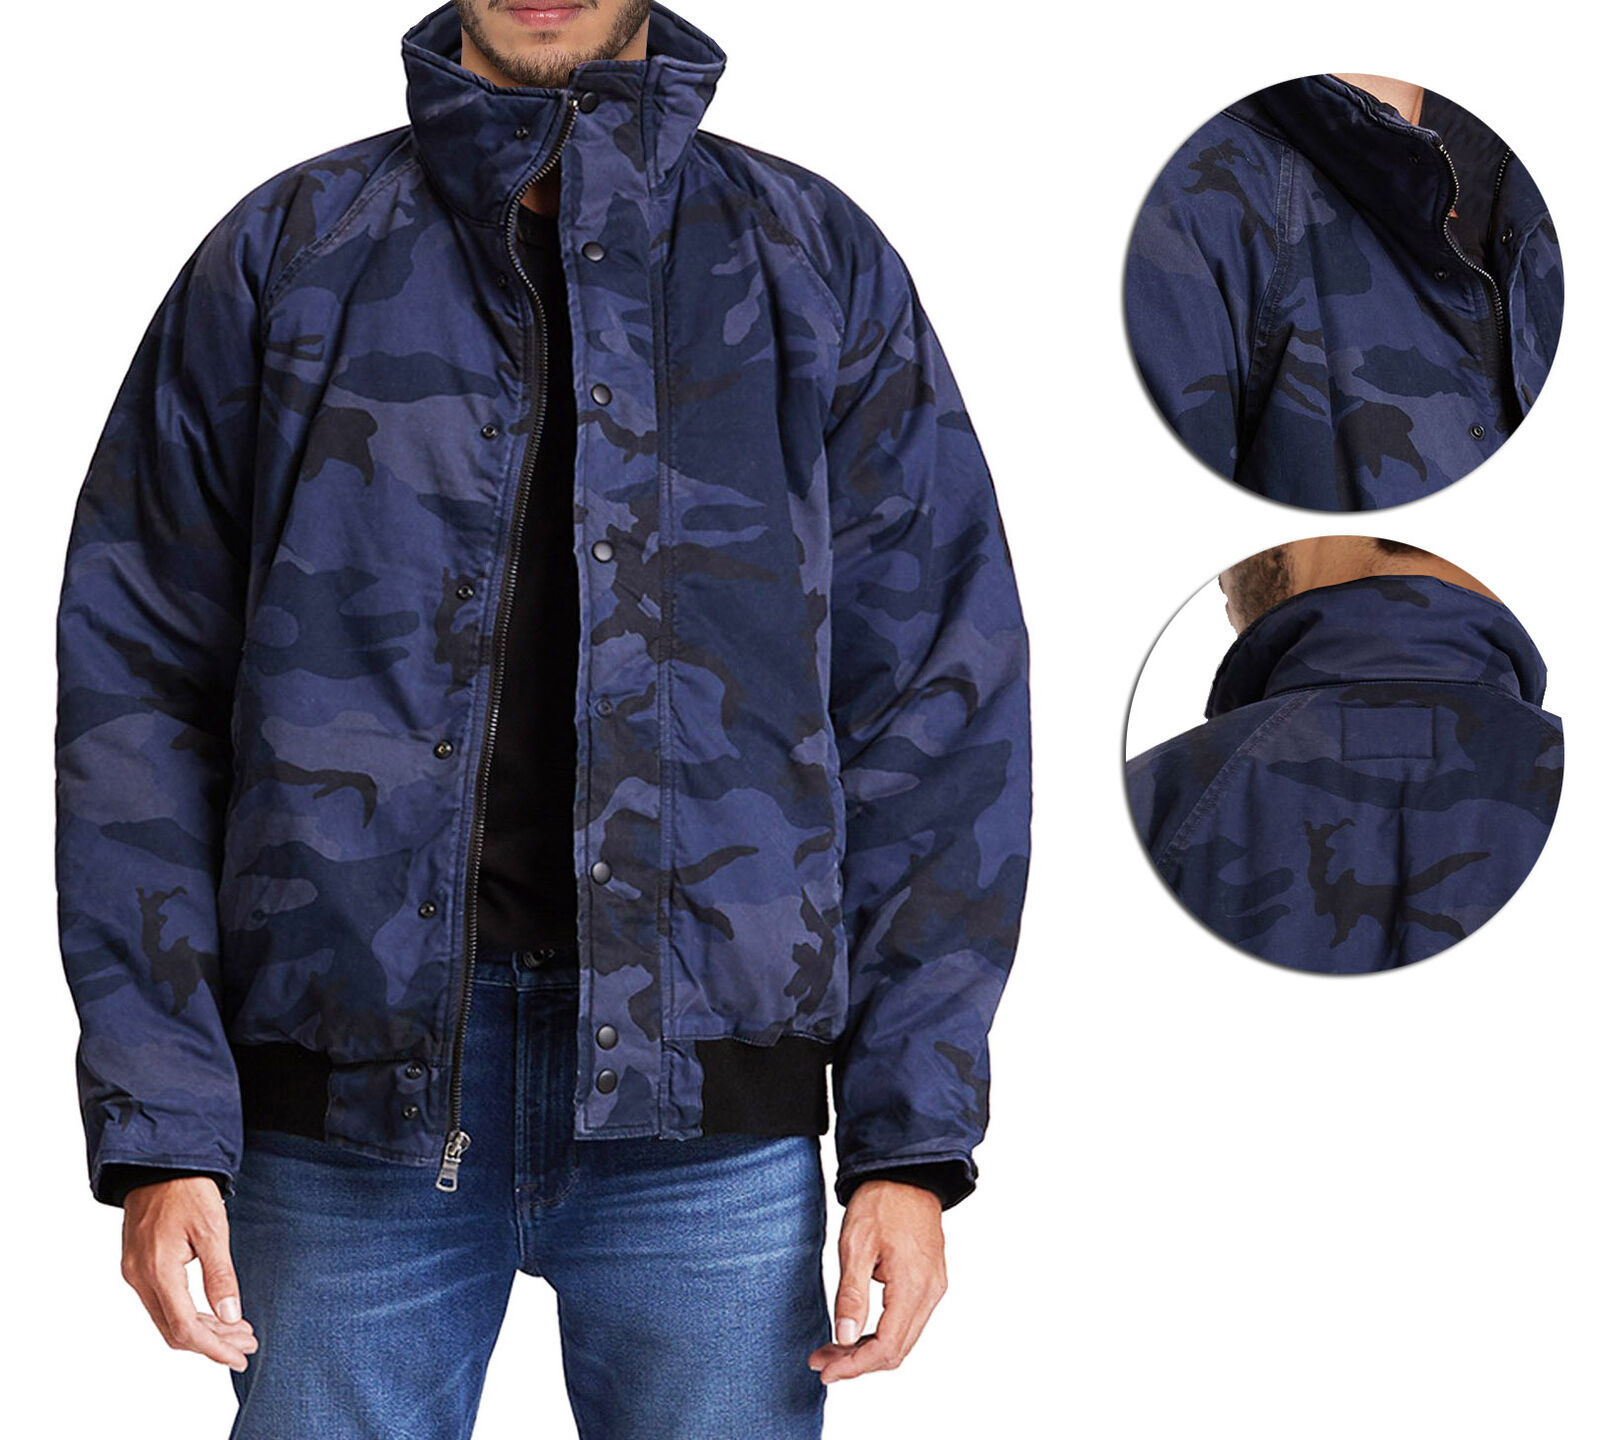 Hudson Jeans Blue Camo Army Casual Full Zip & Snap Button Front Bomber Jacket